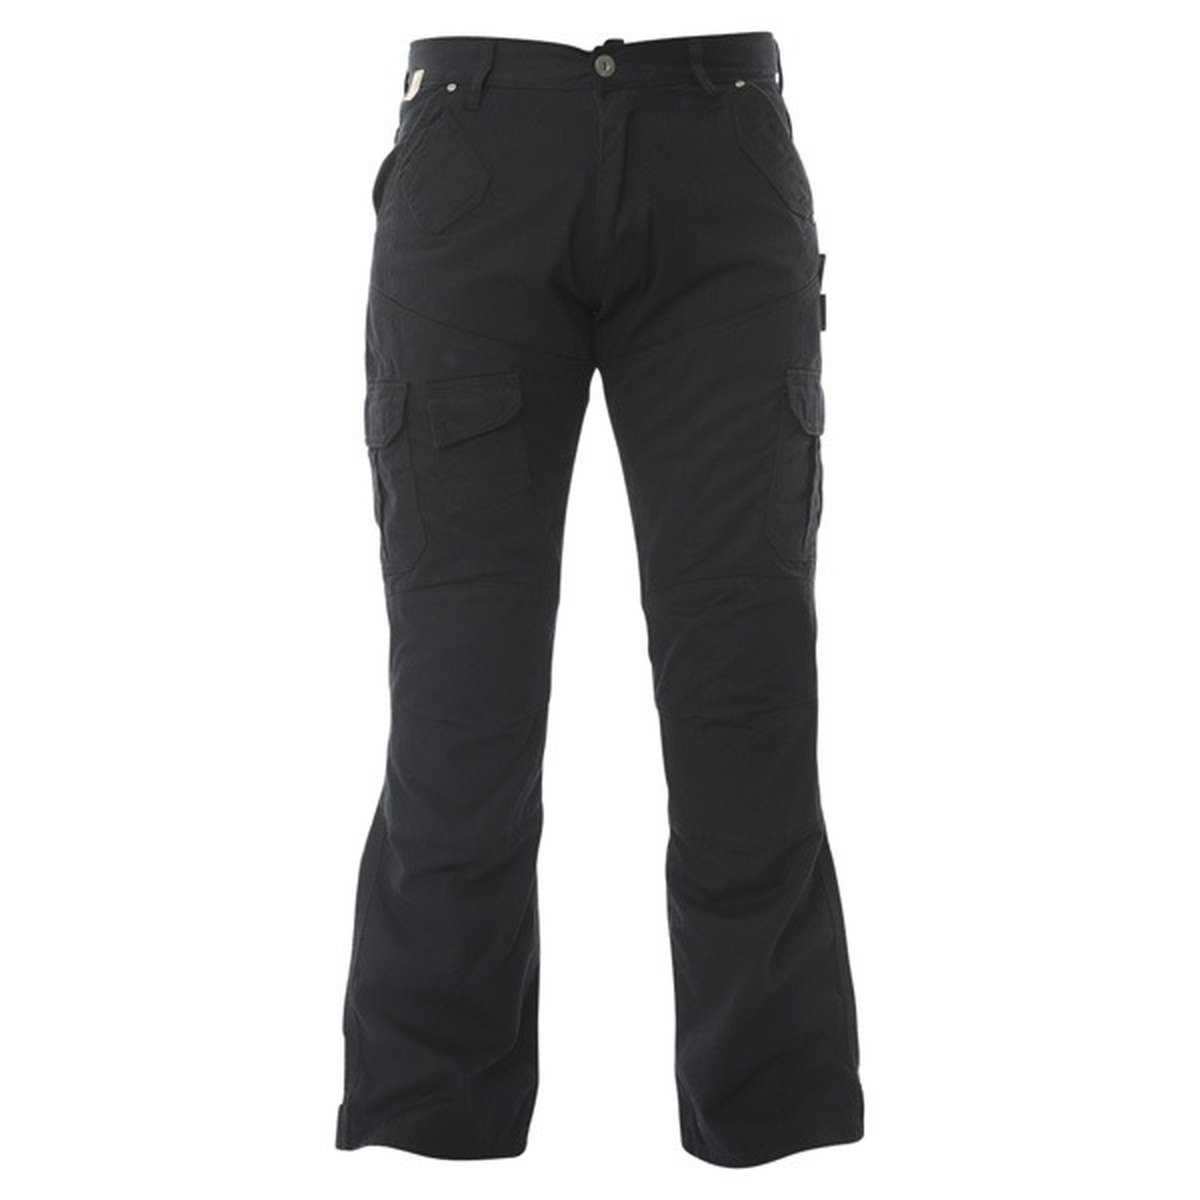 Mens Red Route 007 Cargo Black Jeans